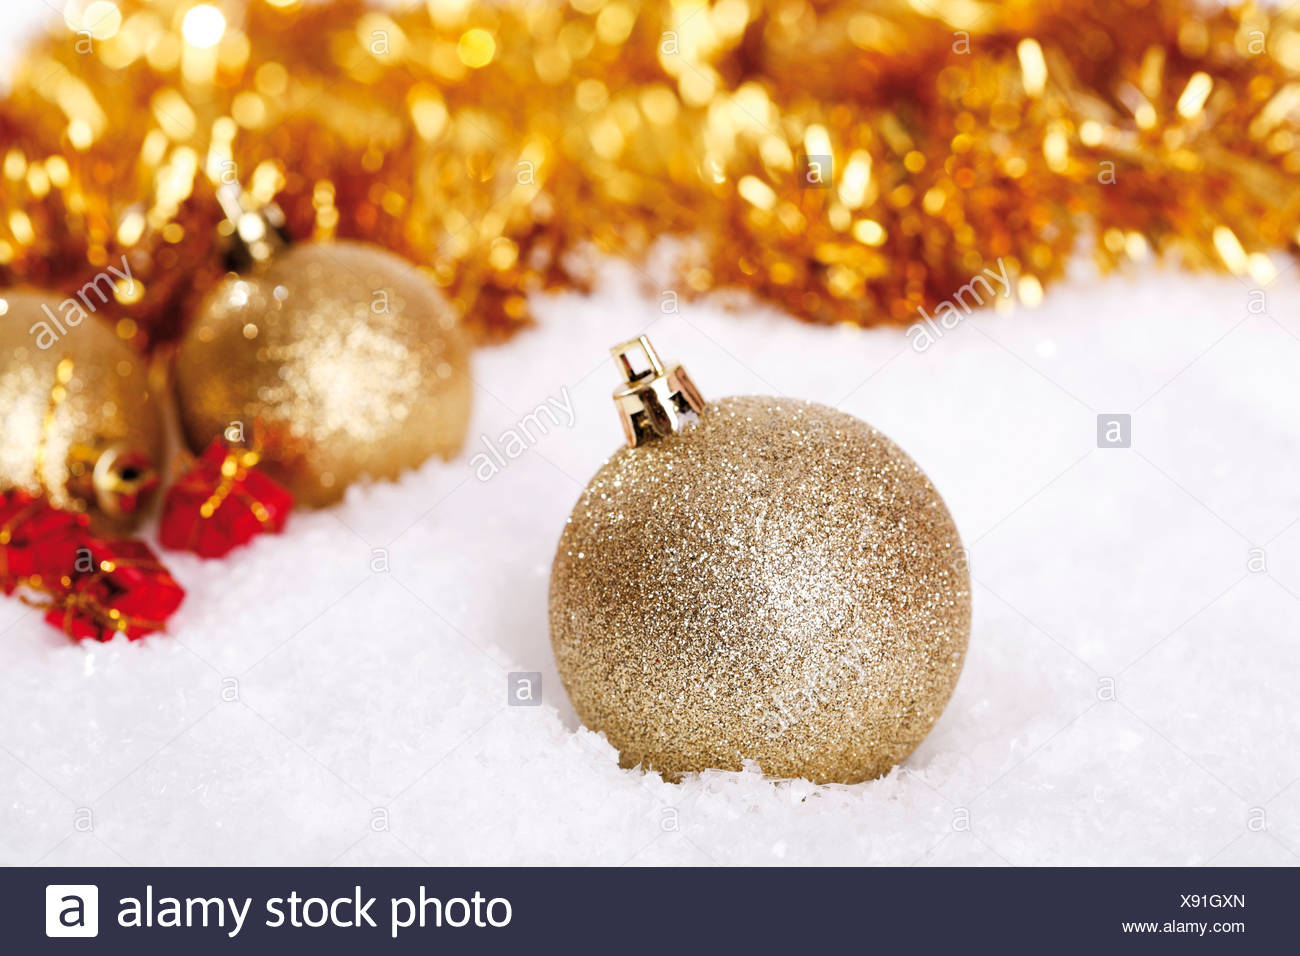 gold glitter christmas tree balls on snow with christmas decorations